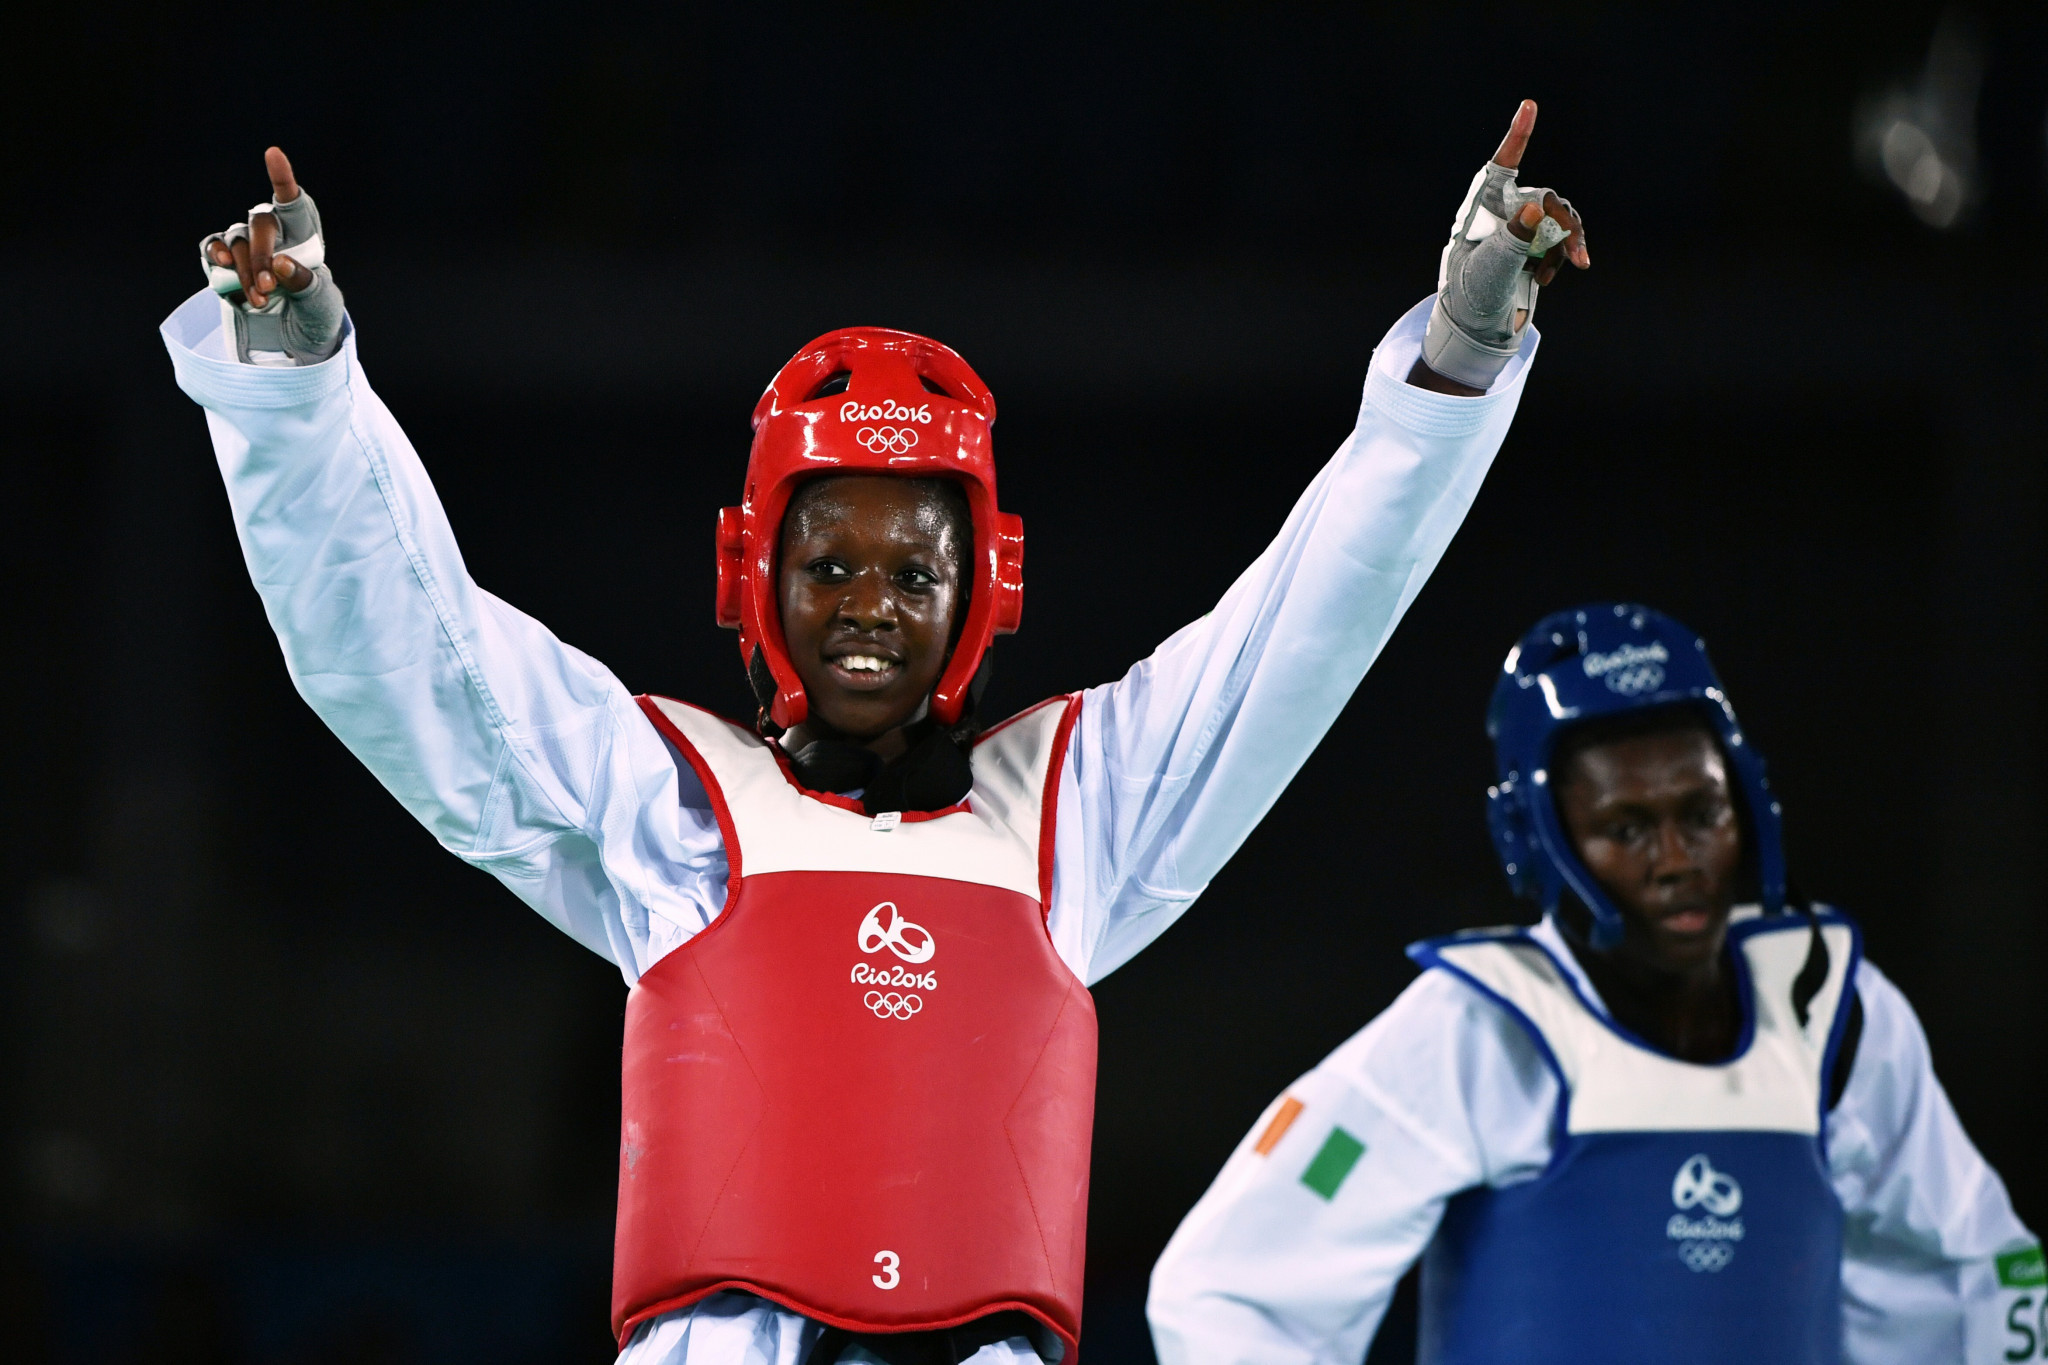 Haby Niaré won World Championship gold and Olympic silver ©Getty Images